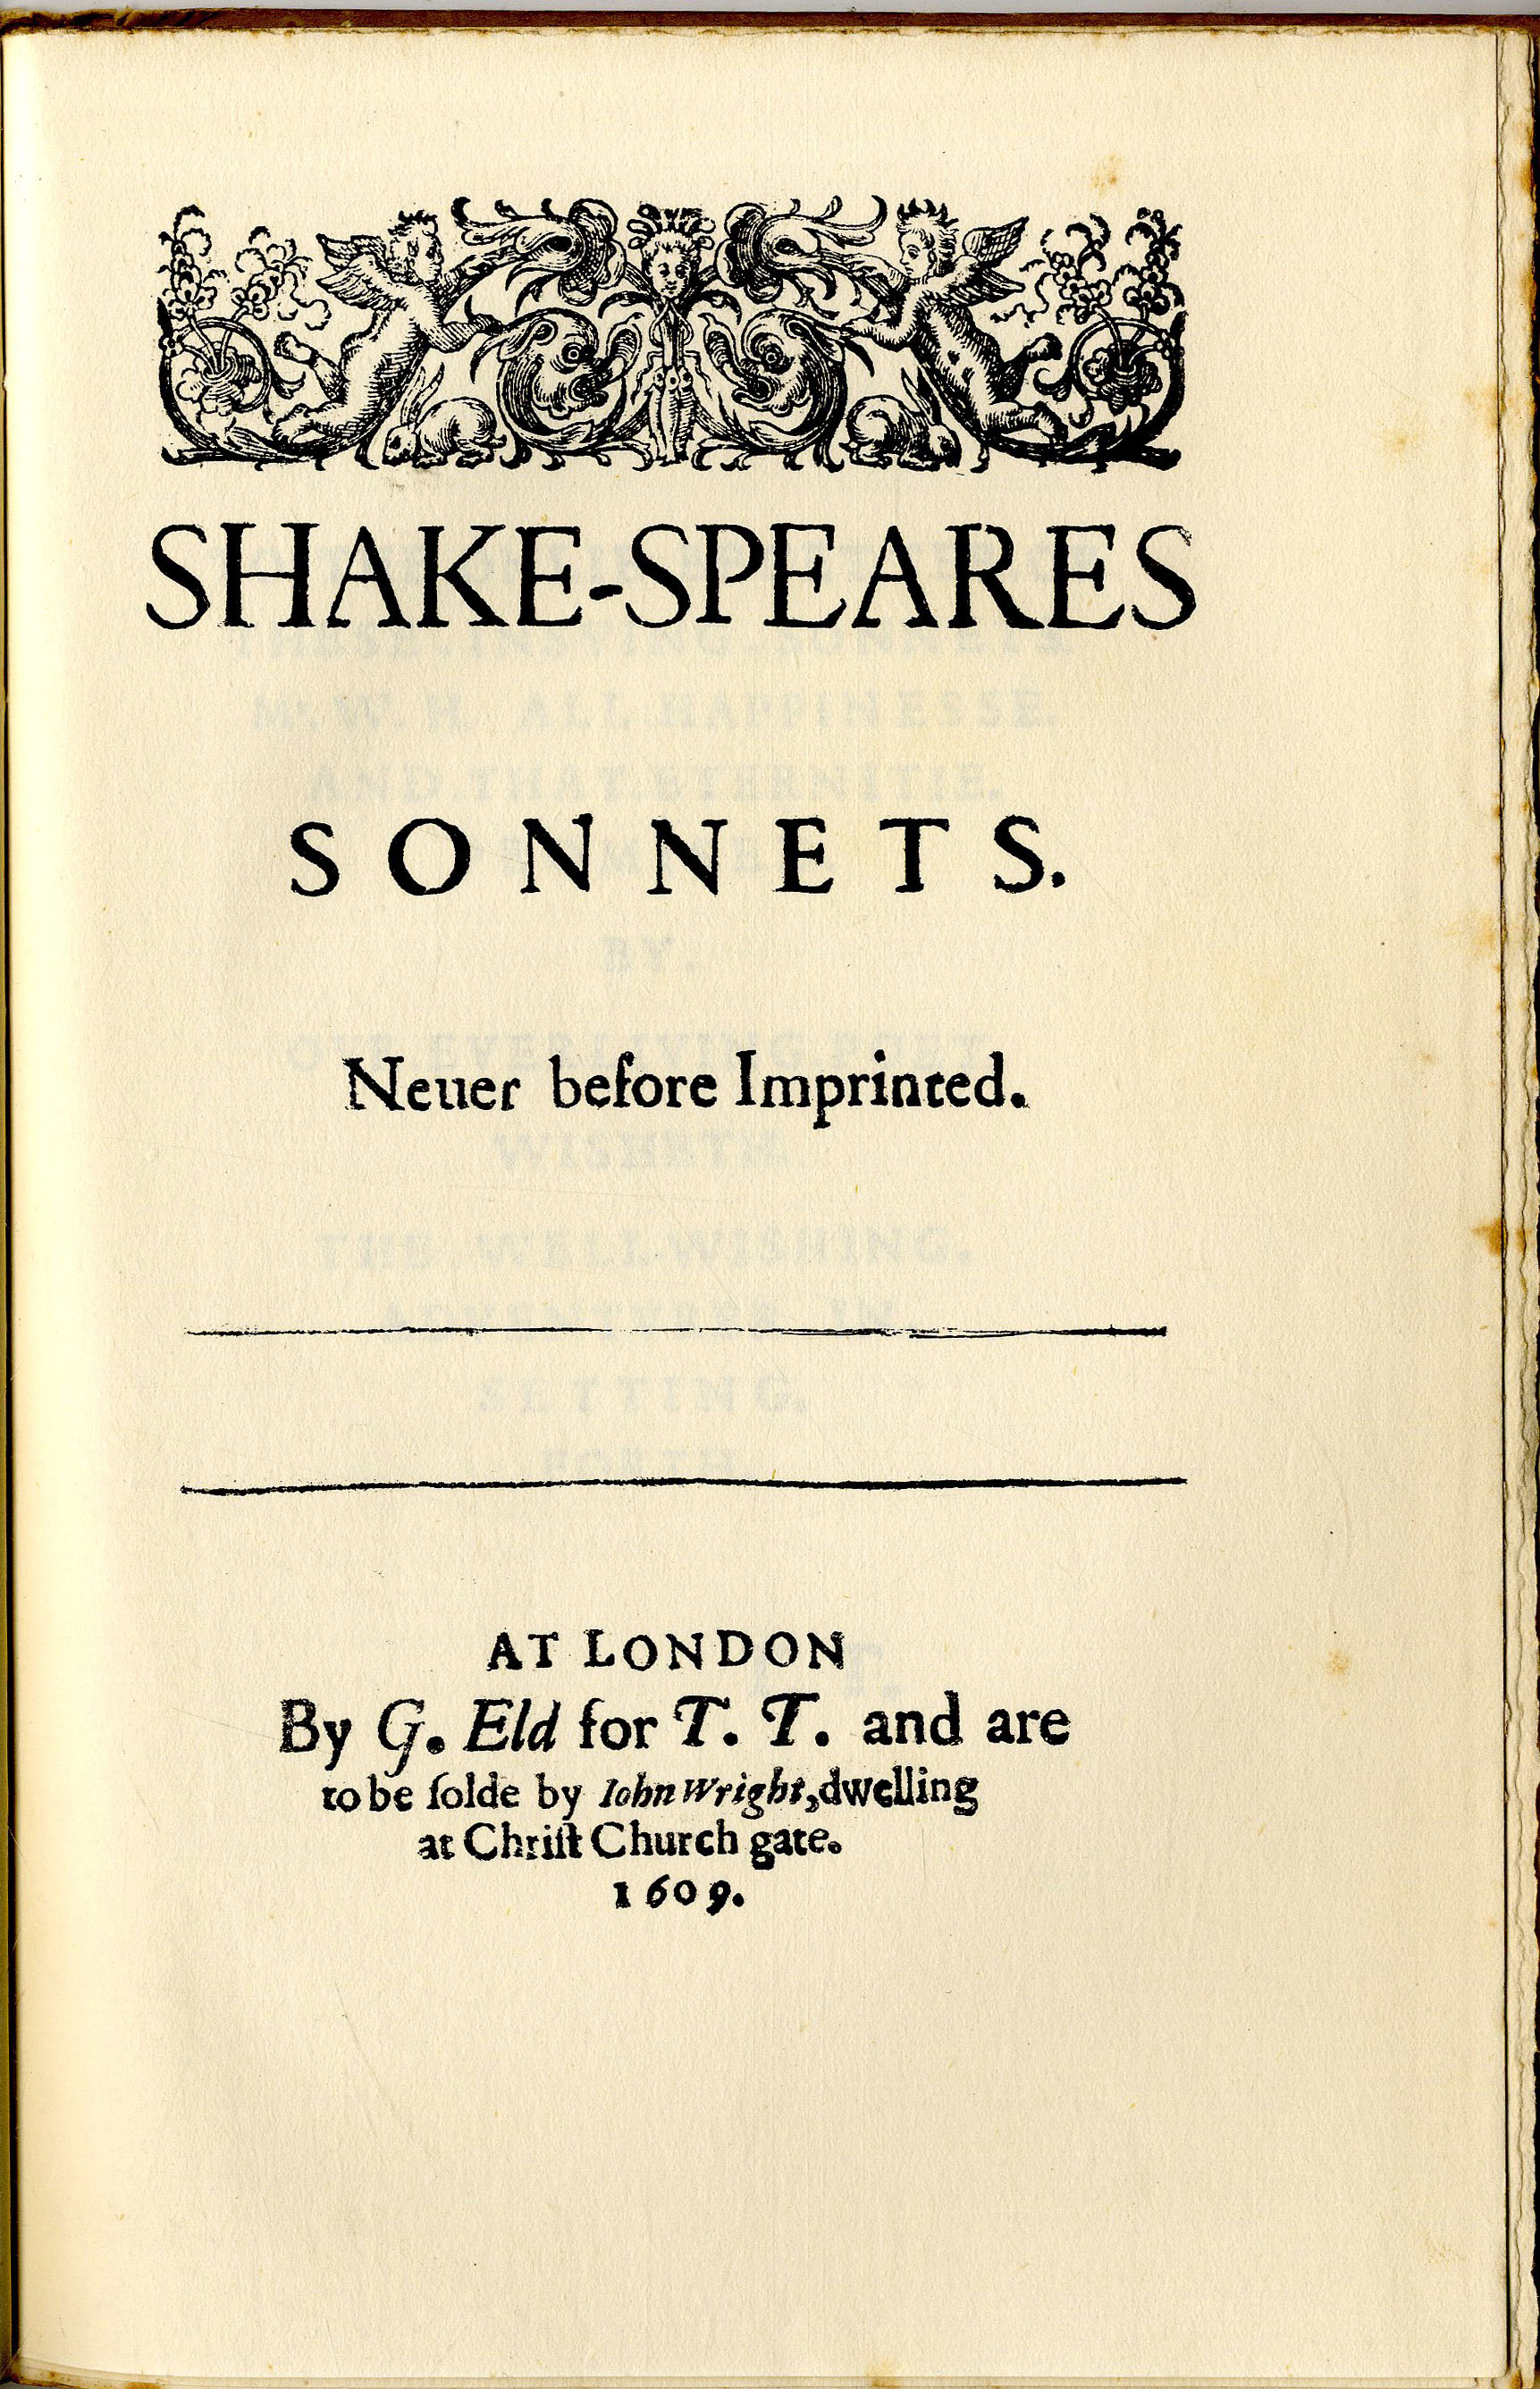 william shakespeare sonnets A sonnet is a 14-line poem that rhymes in a particular pattern in shakespeare's sonnets, the rhyme pattern is abab cdcd efef gg, with the final couplet used to summarize the previous 12 lines or present a surprise ending the rhythmic pattern of the sonnets is the iambic pentameter an iamb is a .